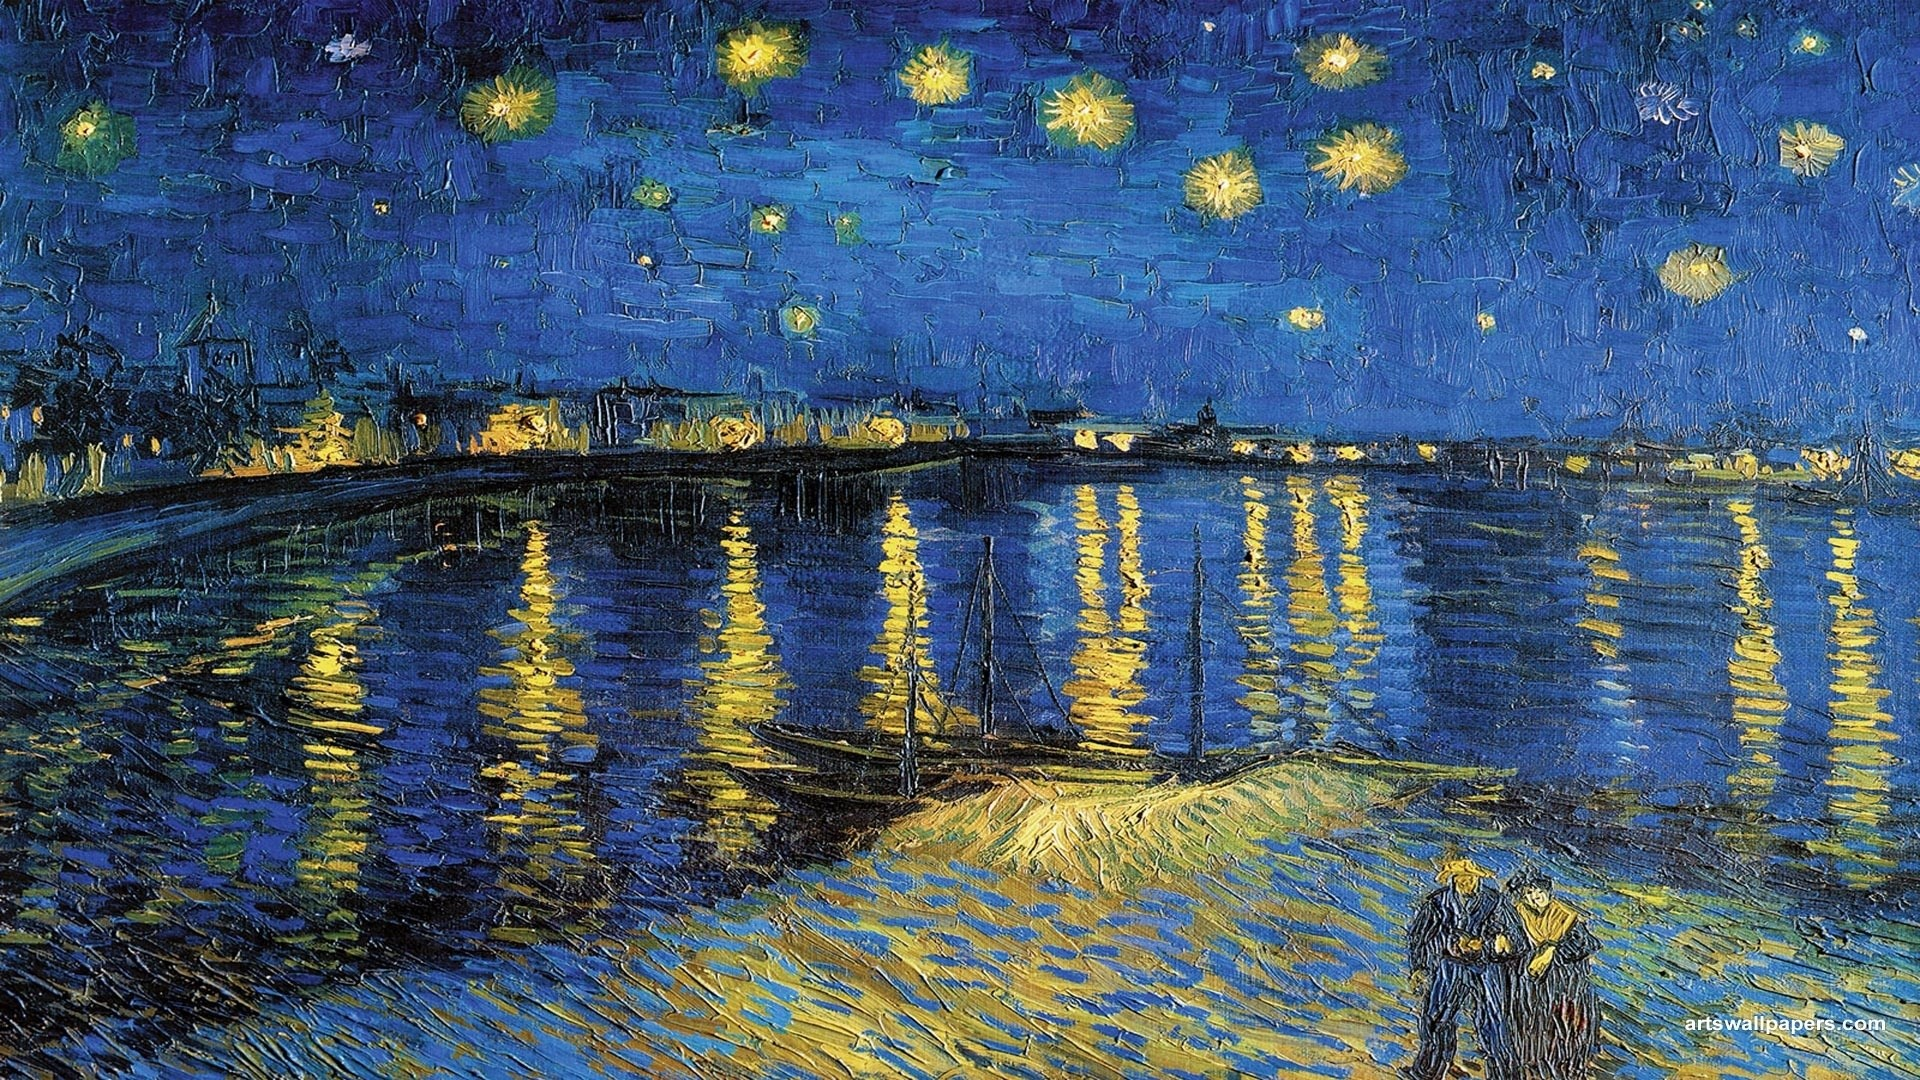 van gogh in comparison with monet They are both impressionist they painted what they saw but van gogh added his expression in his paintings therefore making them different from each other.